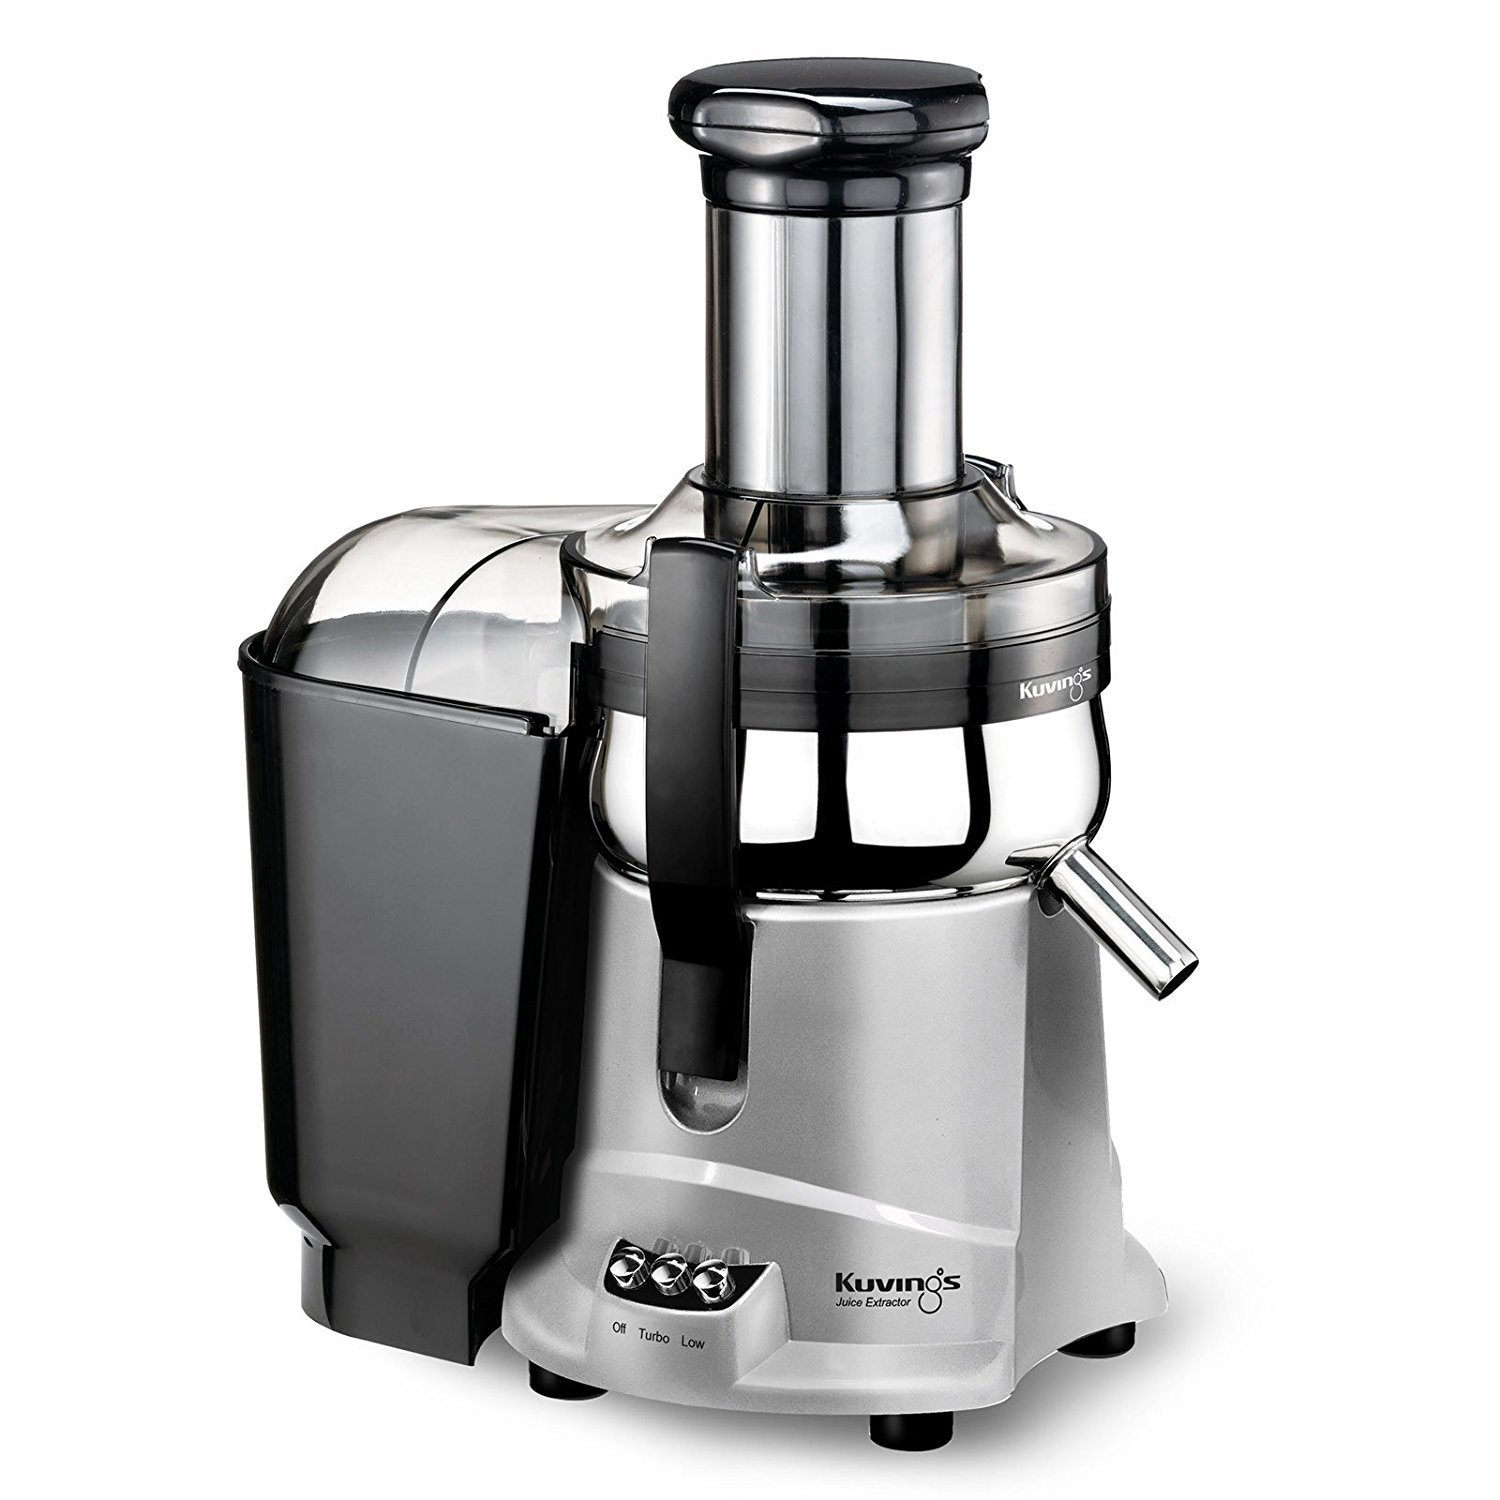 Kuvings BPA-Free Centrifugal Juice Extractor – Available in 4 Colors